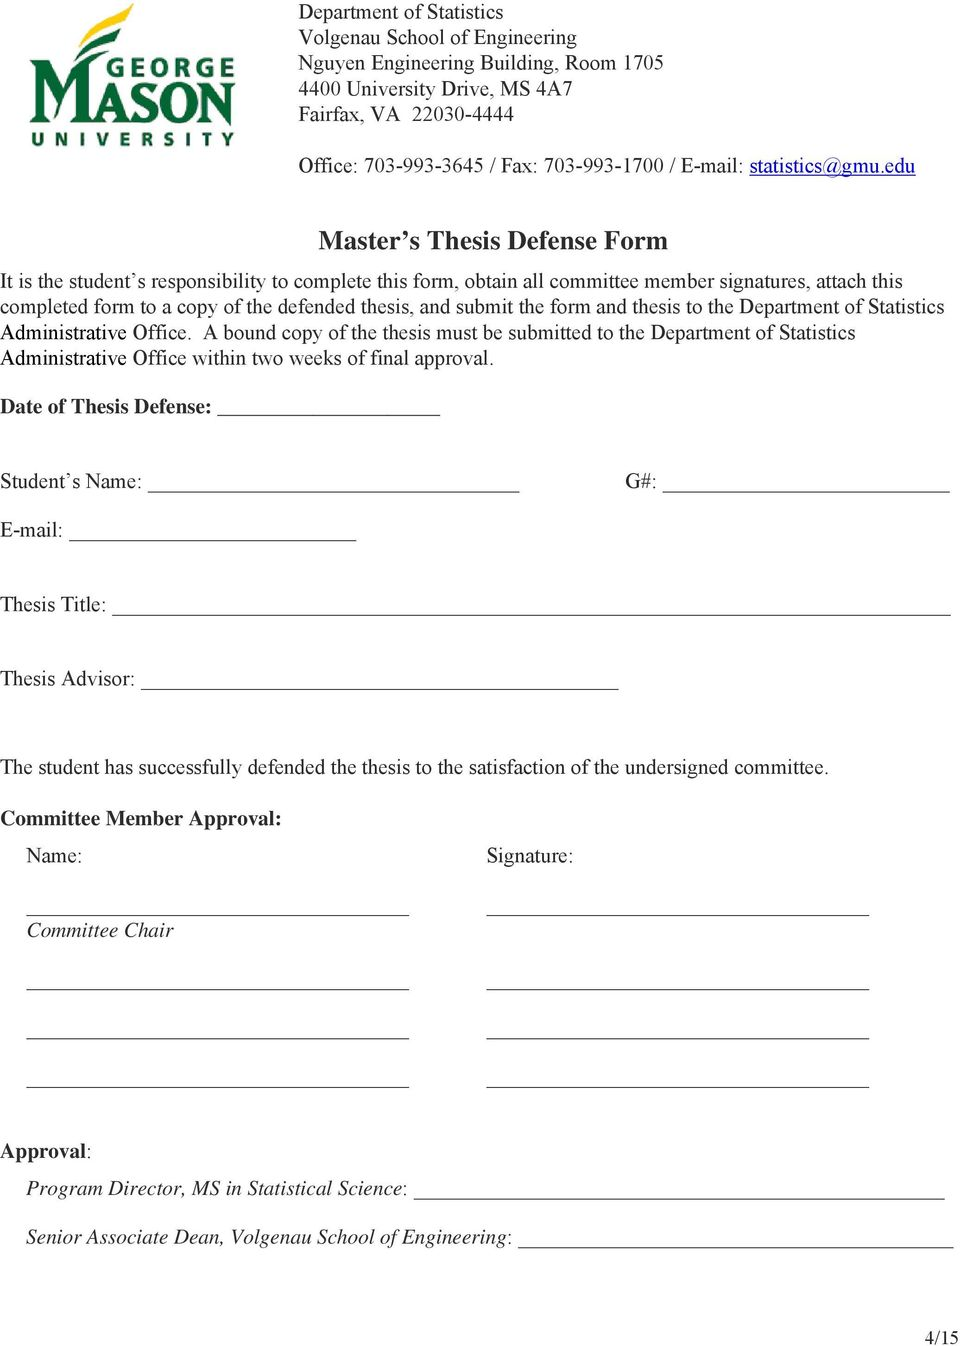 edu Master s Thesis Defense Form It is the student s responsibility to complete this form, obtain all committee member signatures, attach this completed form to a copy of the defended thesis, and